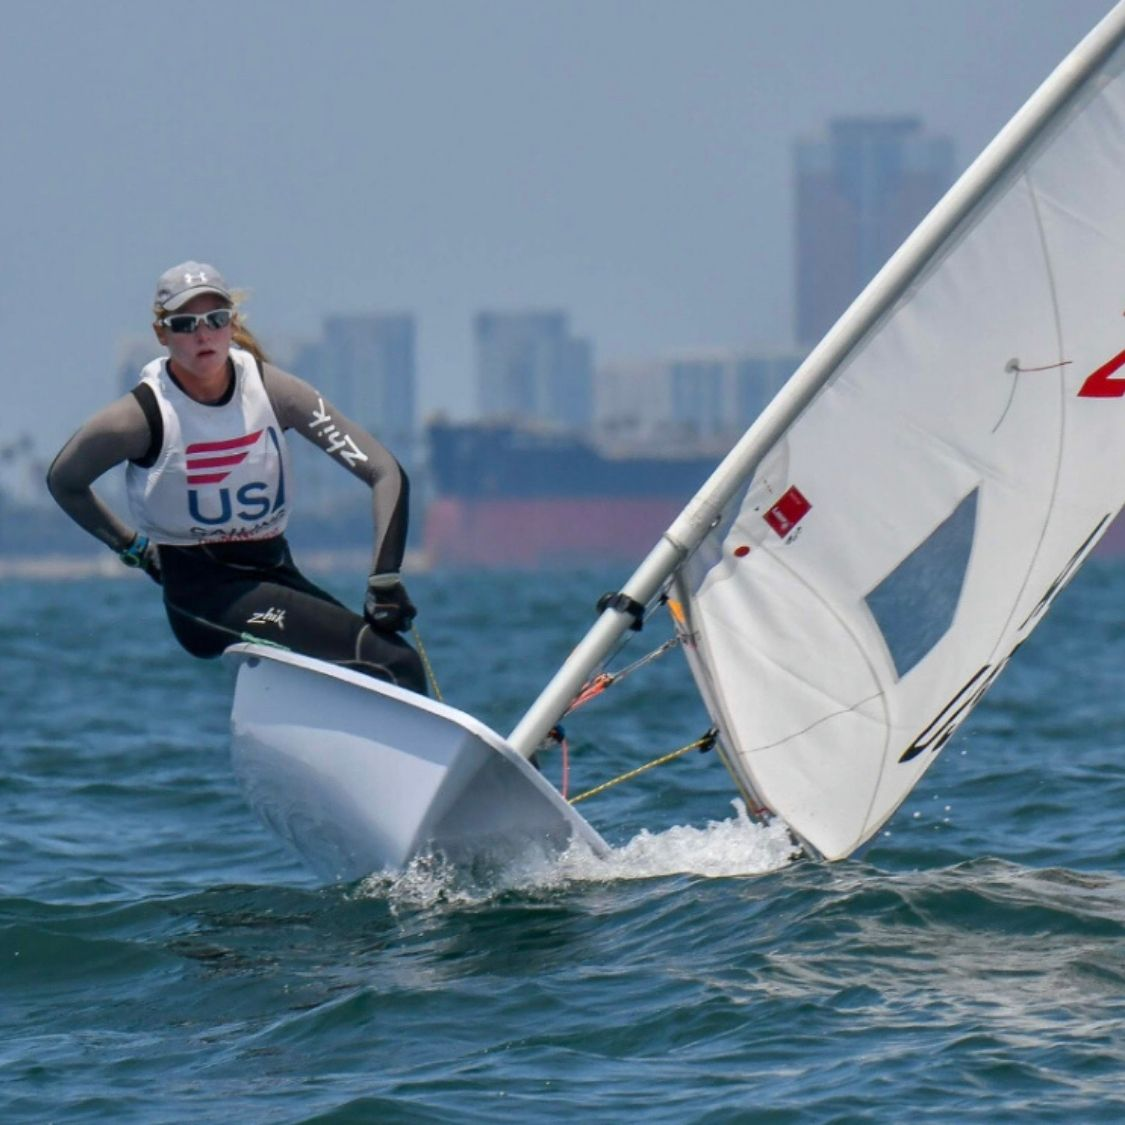 professional sailor hallie schiffman SPT athlete